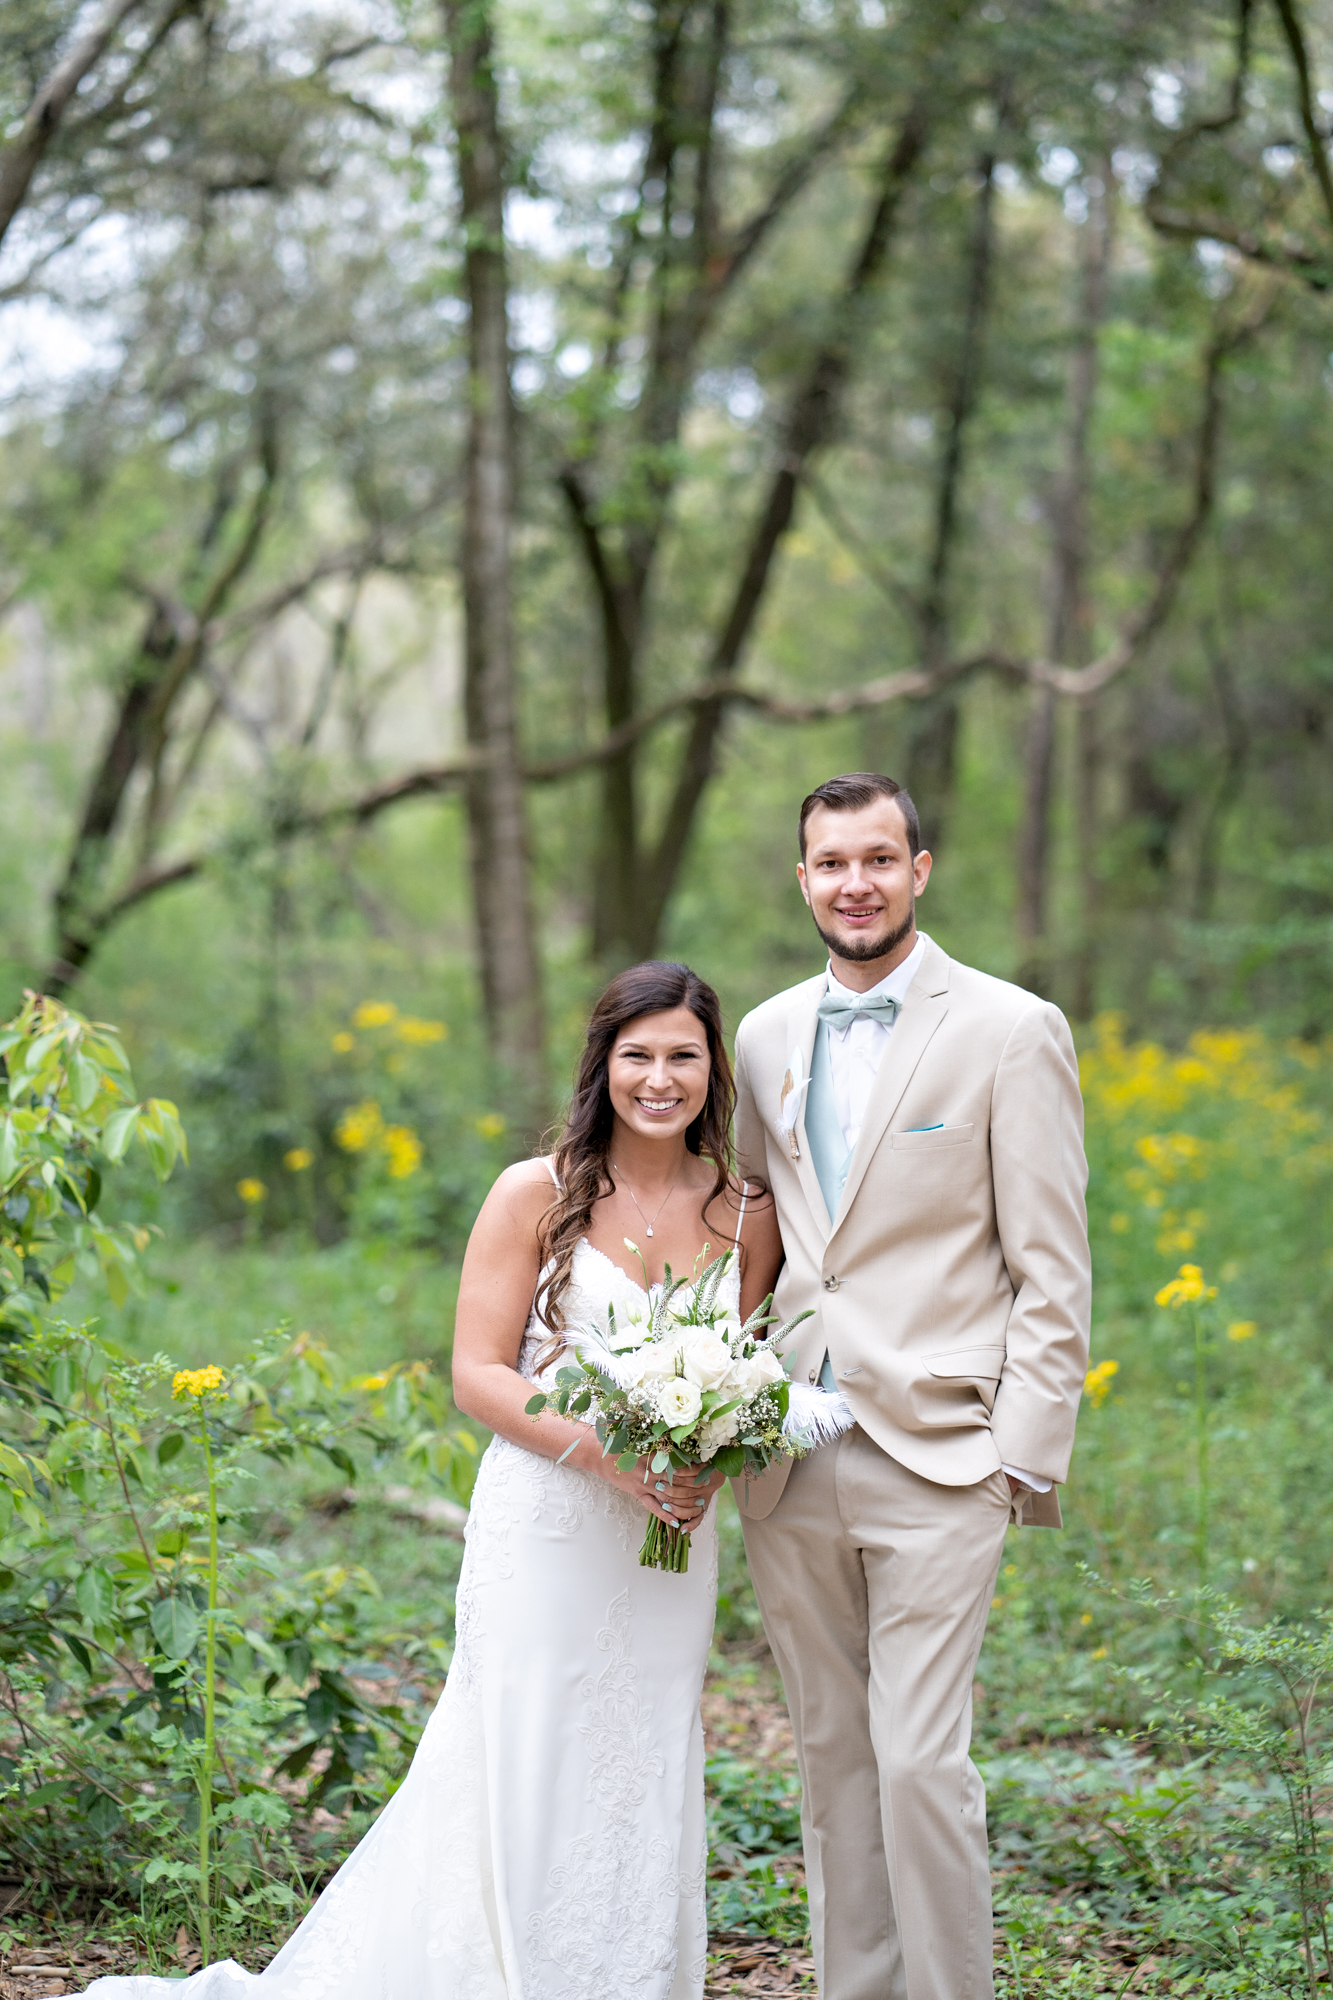 Fairhope-Alabama-Wedding-Photographers-Nick-Drollette-Photography-145.jpg